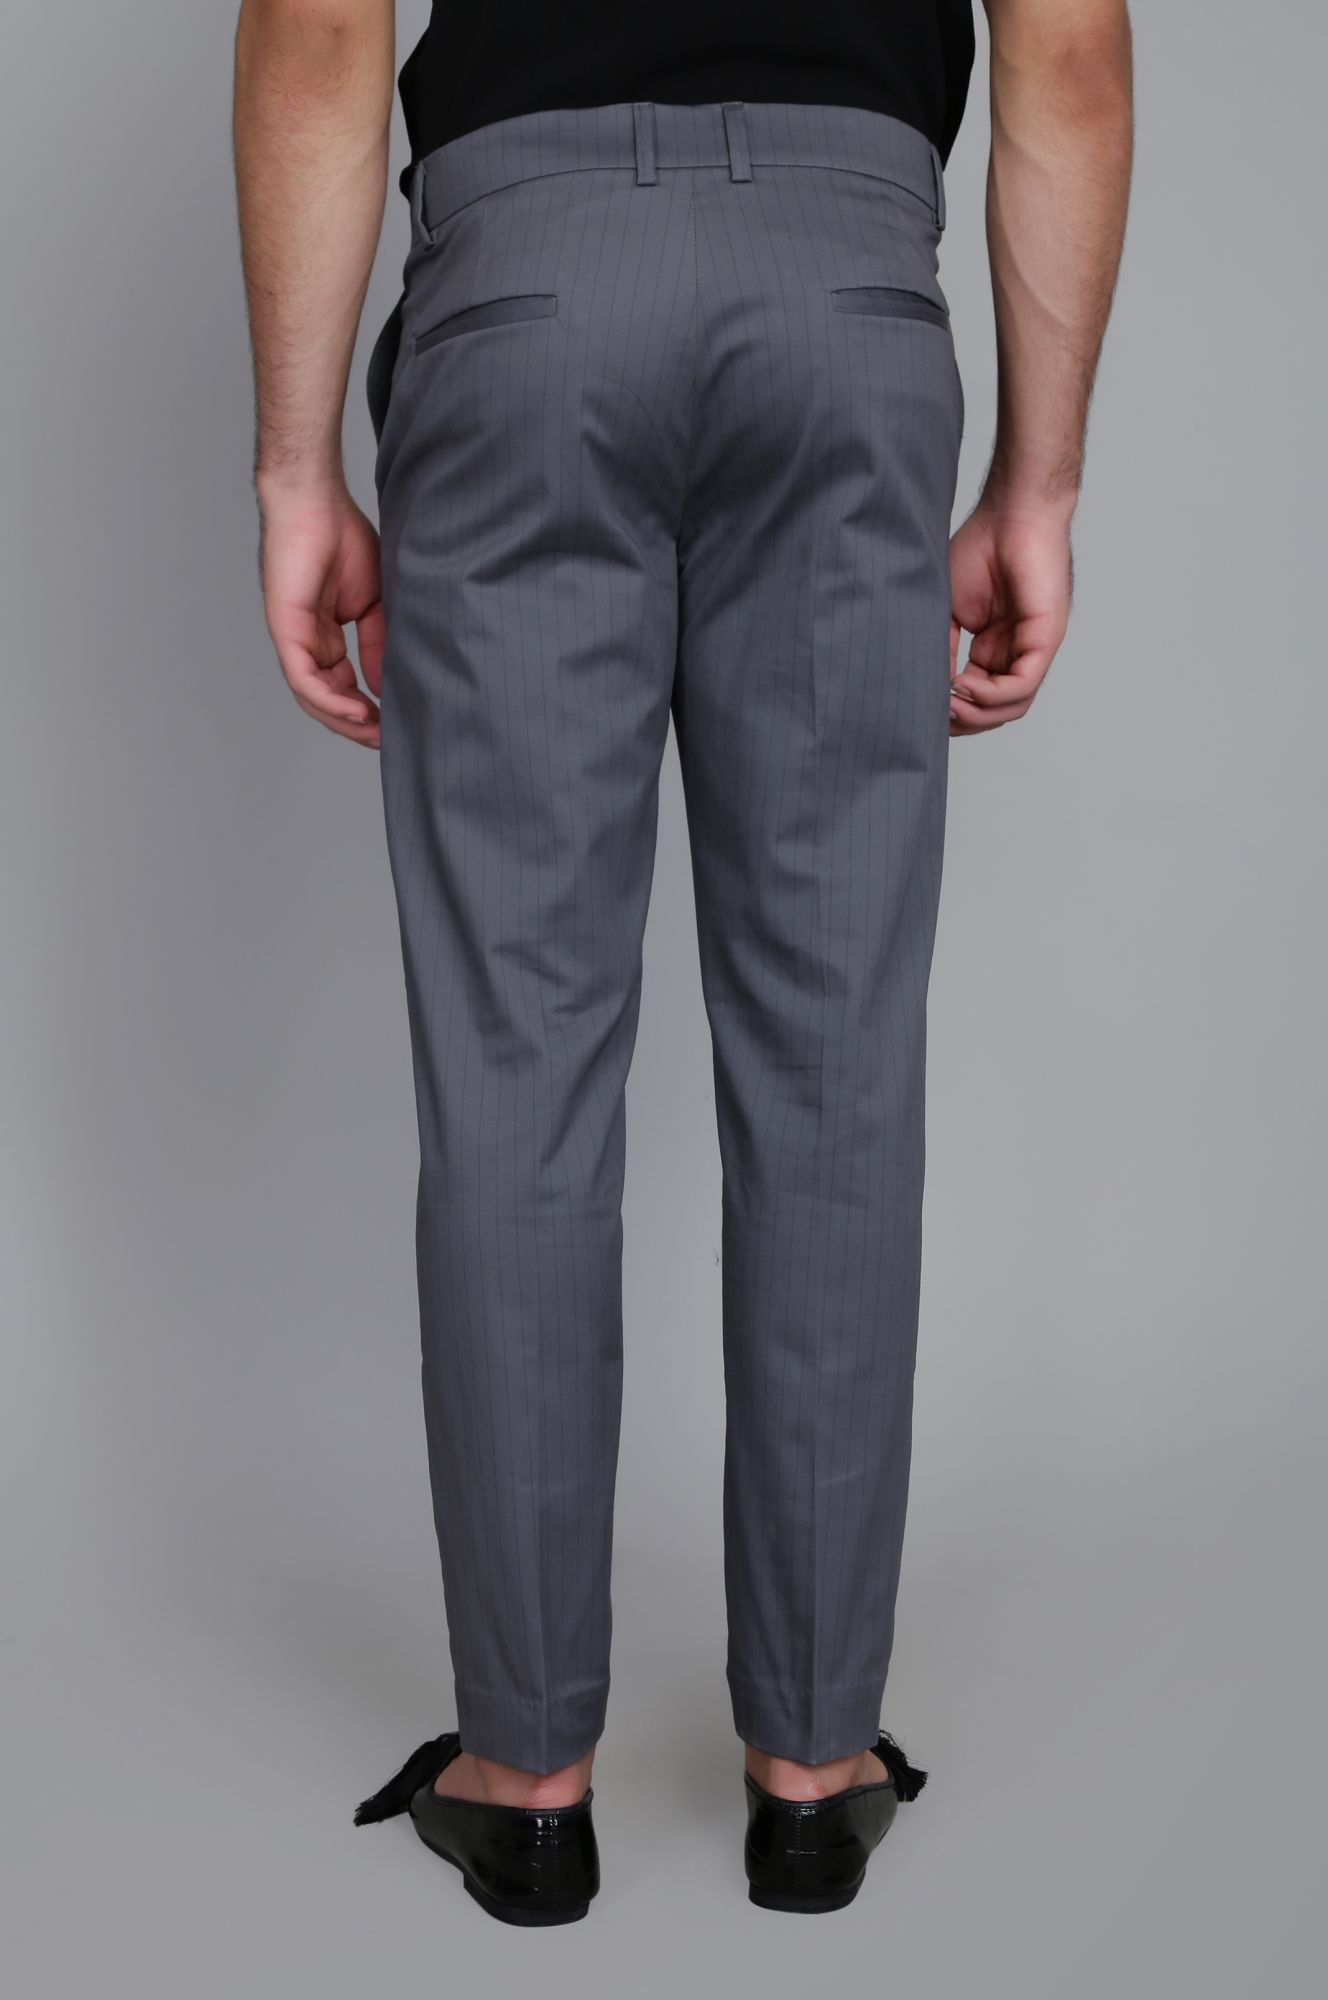 Striped Tailored fit pants in Grey